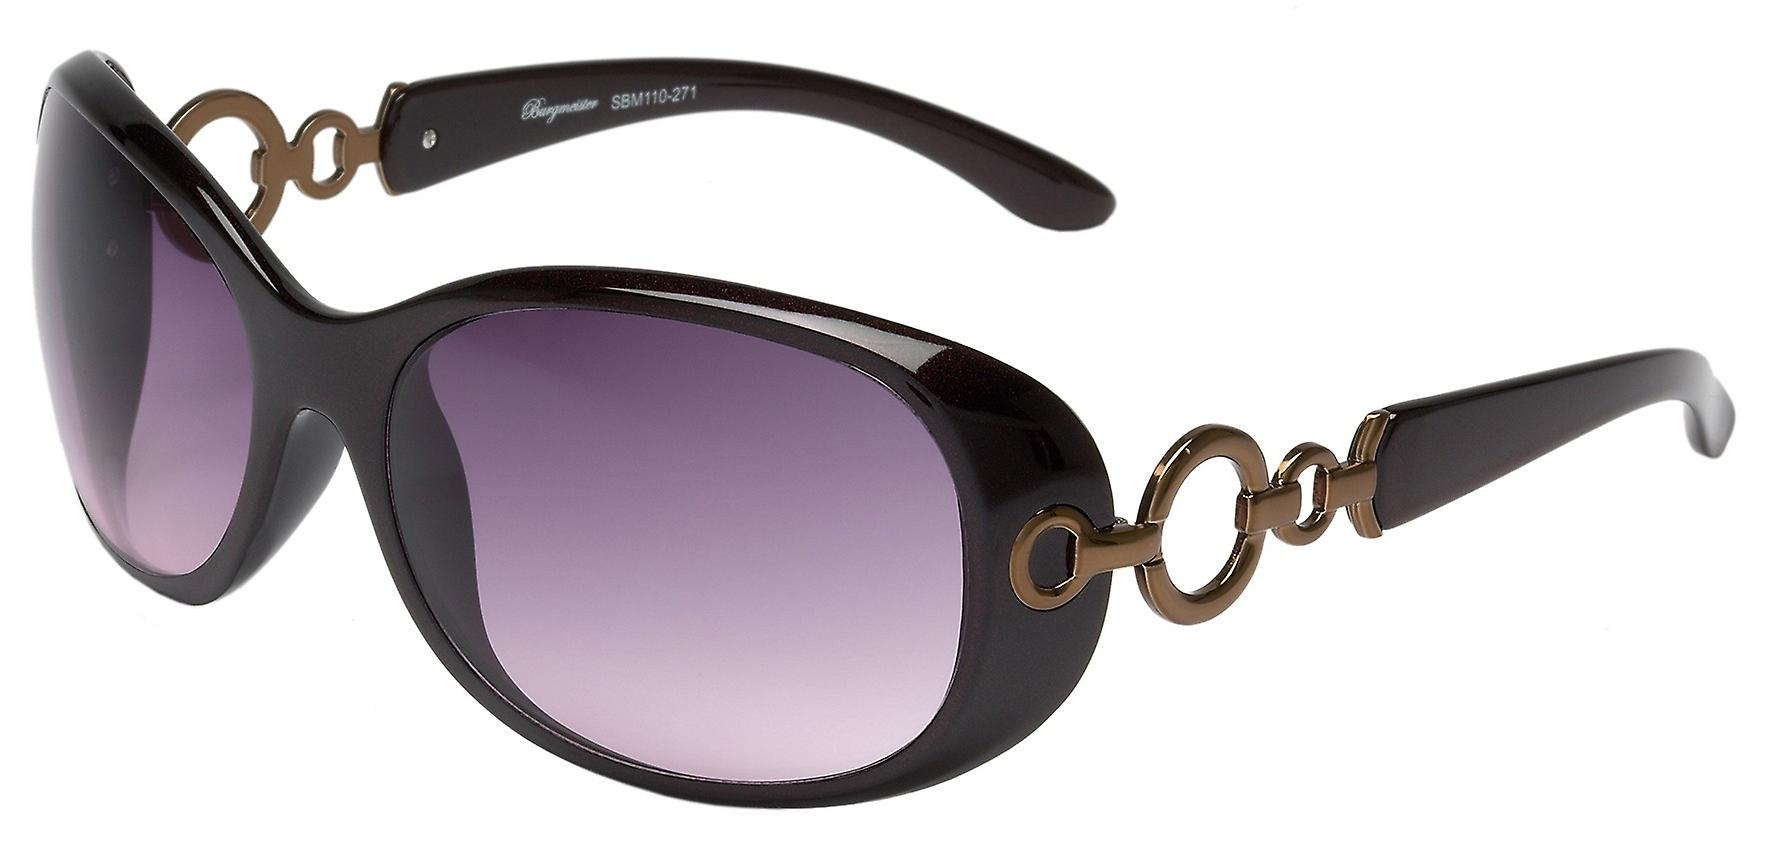 Burgmeister Ladies sunglasses Madrid, SBM110-271